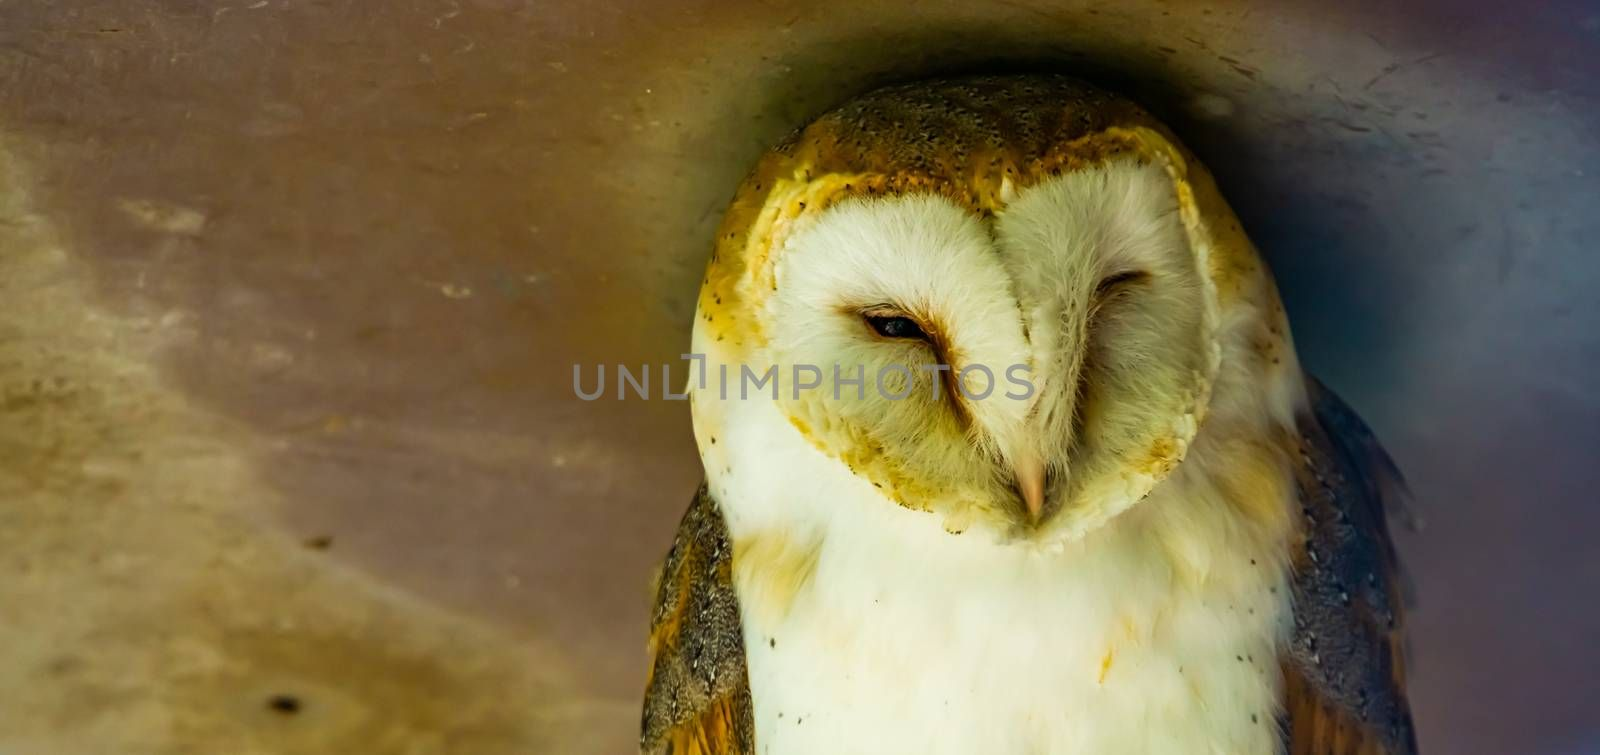 closeup of the face of a common barn owl, bird specie from the Netherlands